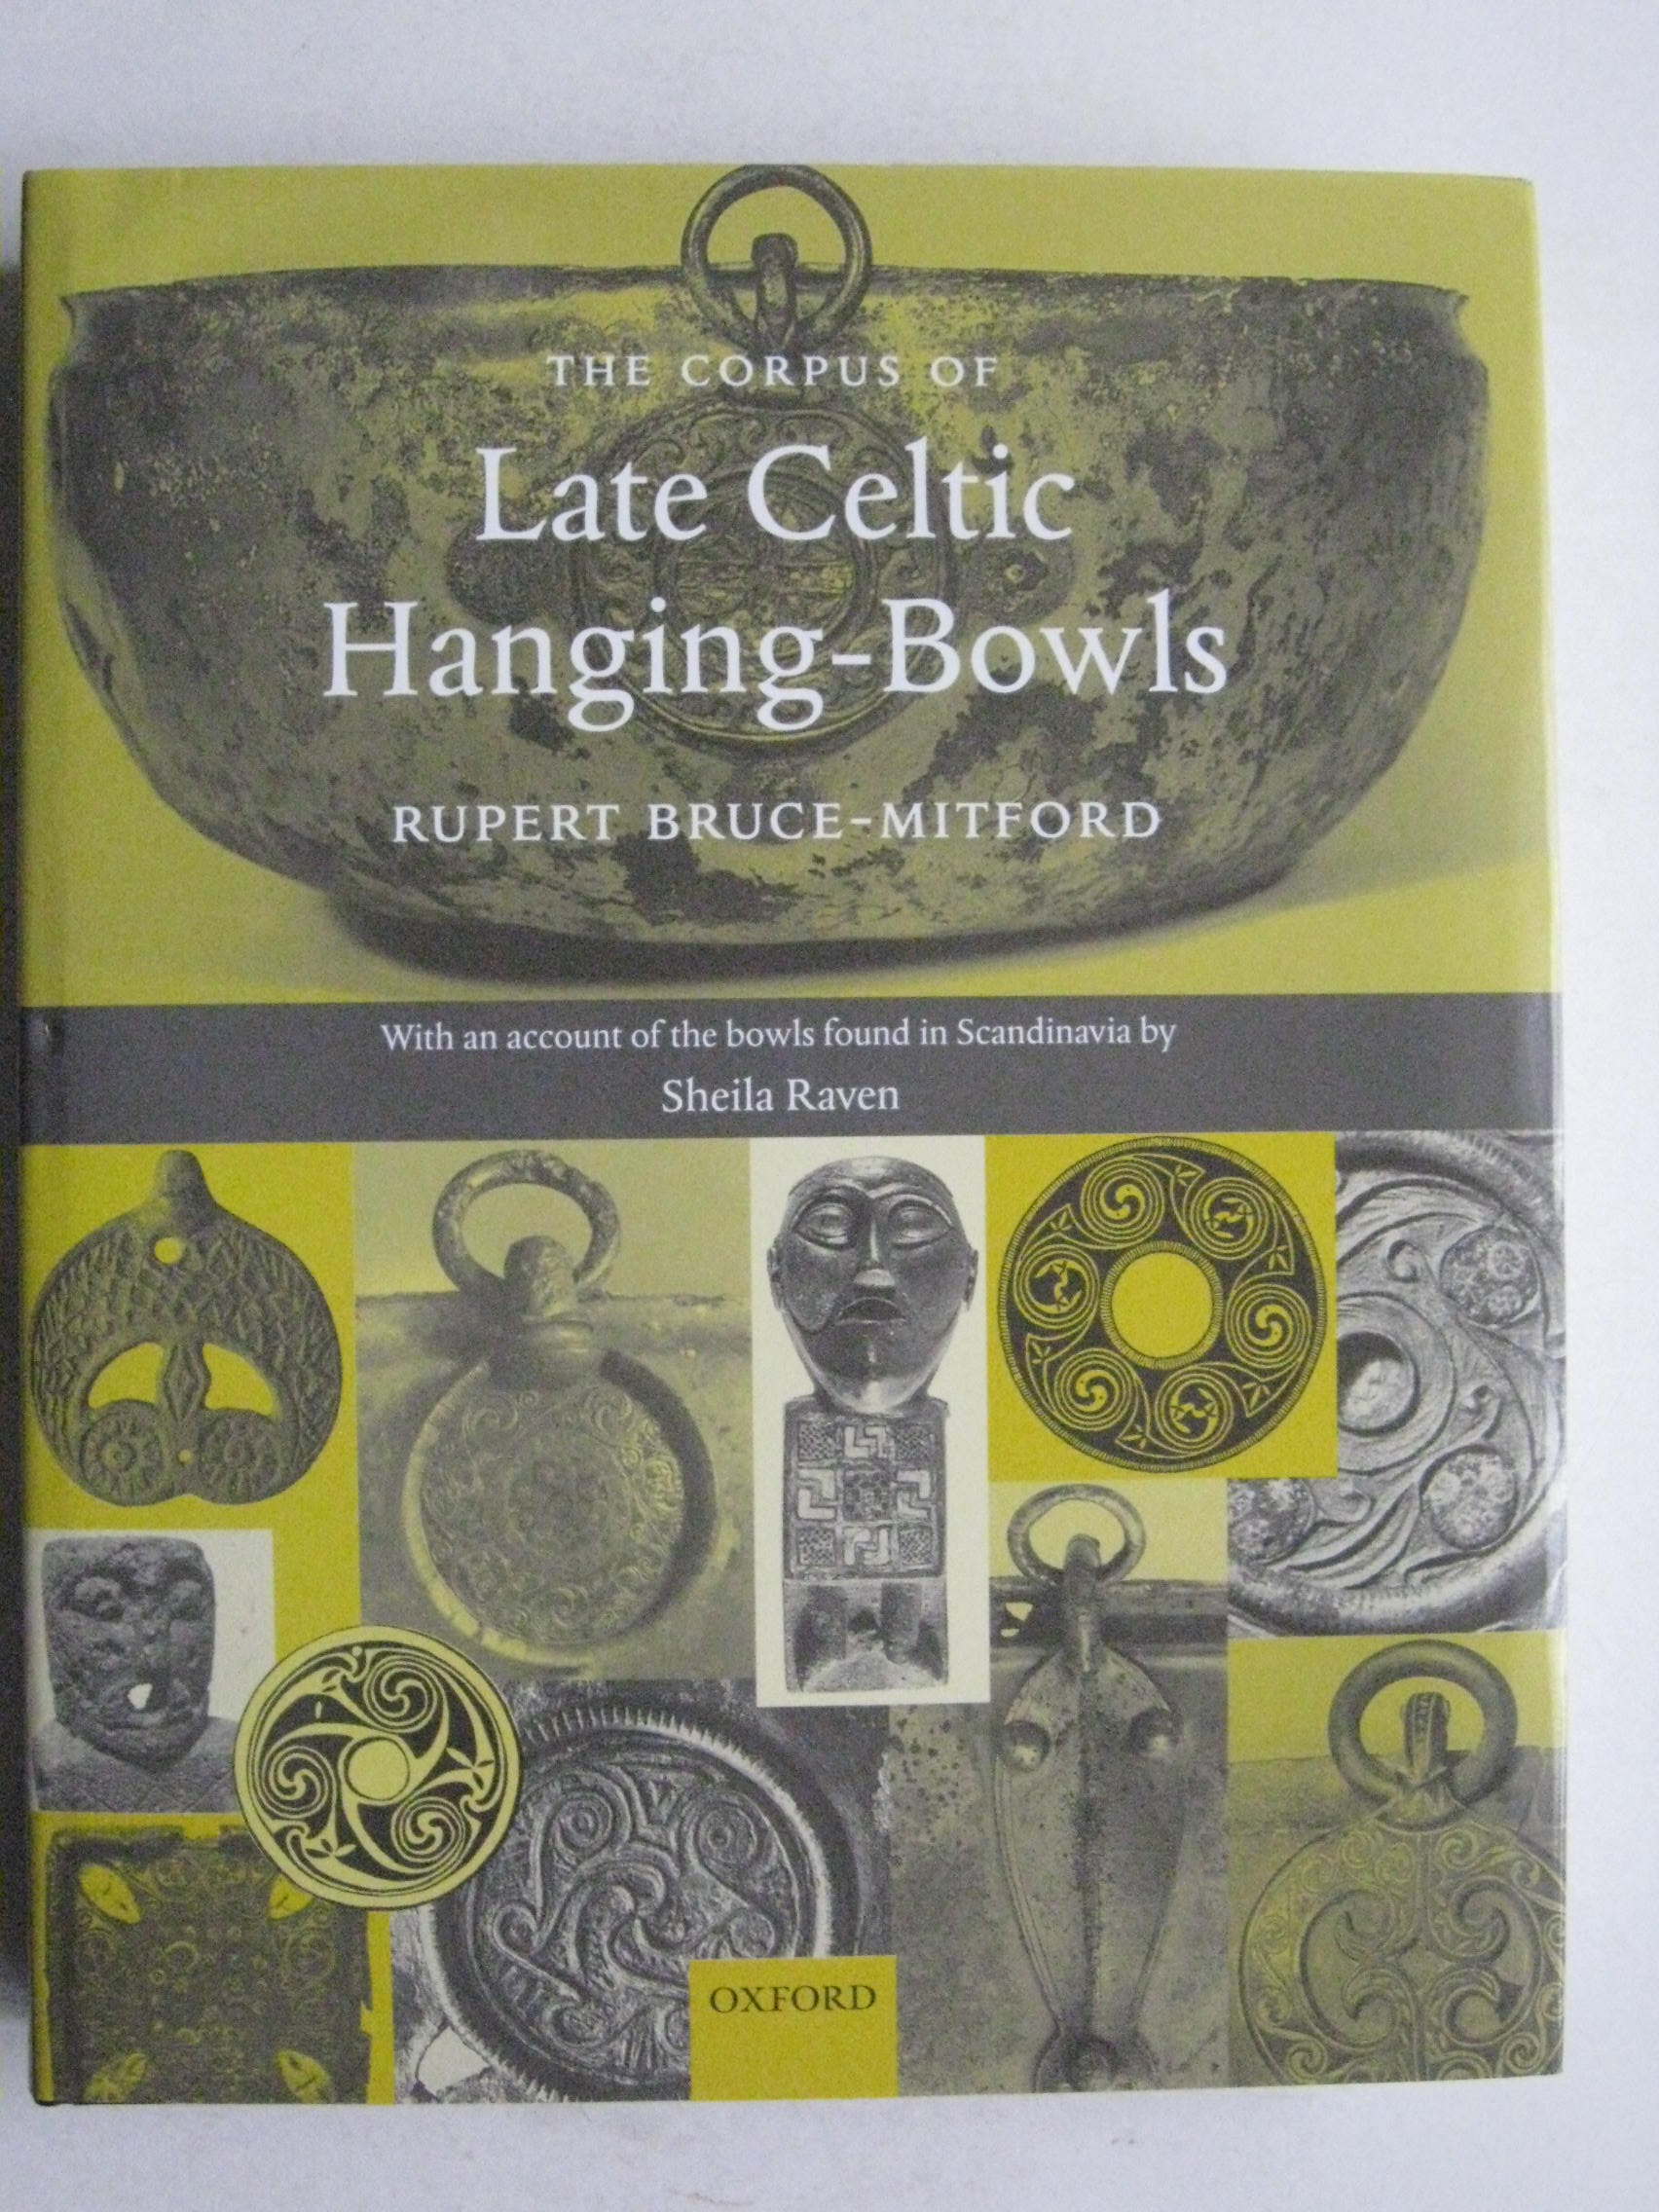 The Corpus of Late Celtic Hanging-Bowls :With an account of the bowls found in Scandinavia by Sheila Raven